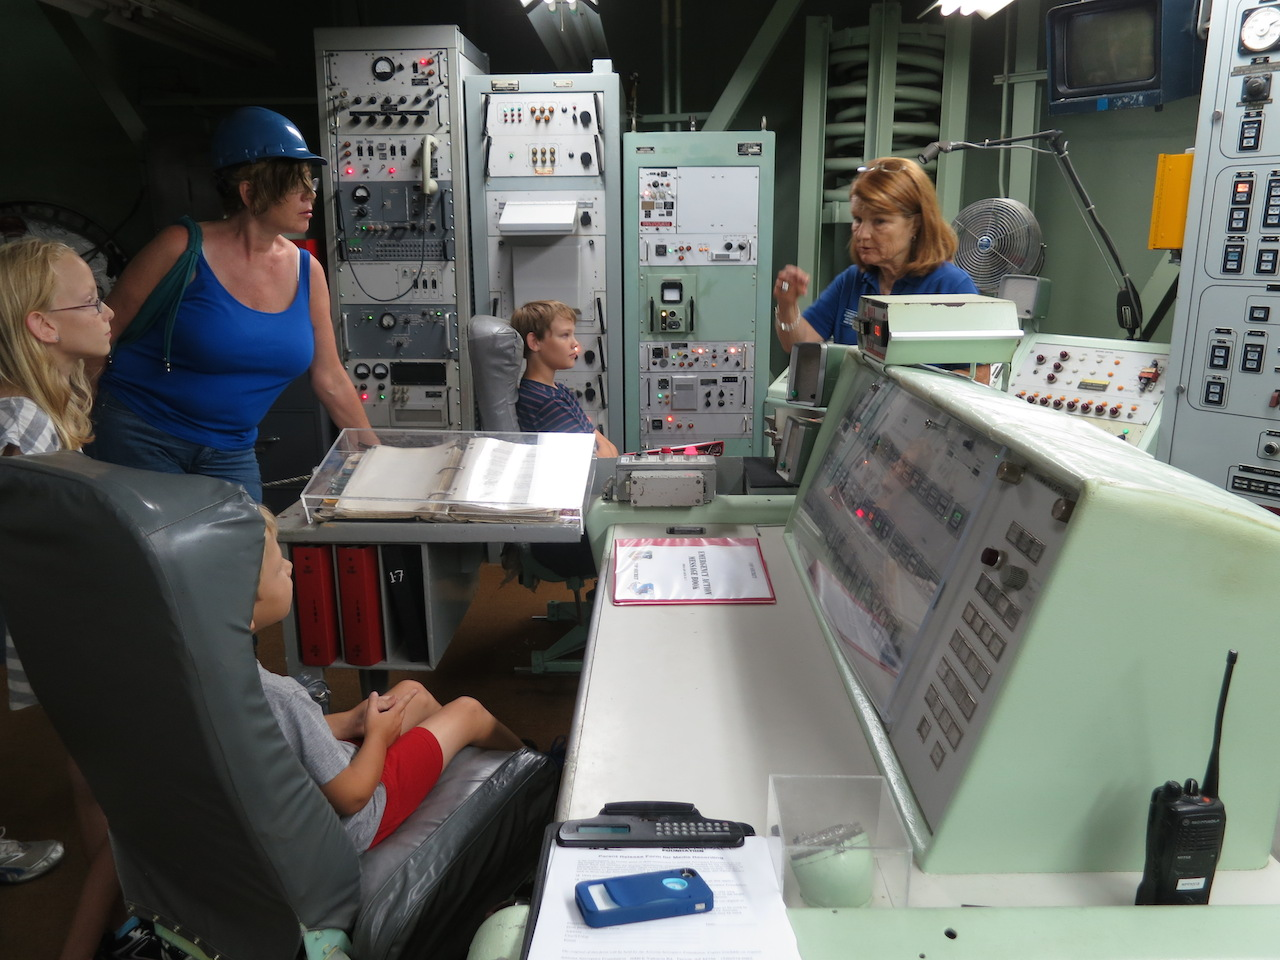 A family experiencing the Titan Launch Control Center tour with docent and past crew member Maggie.